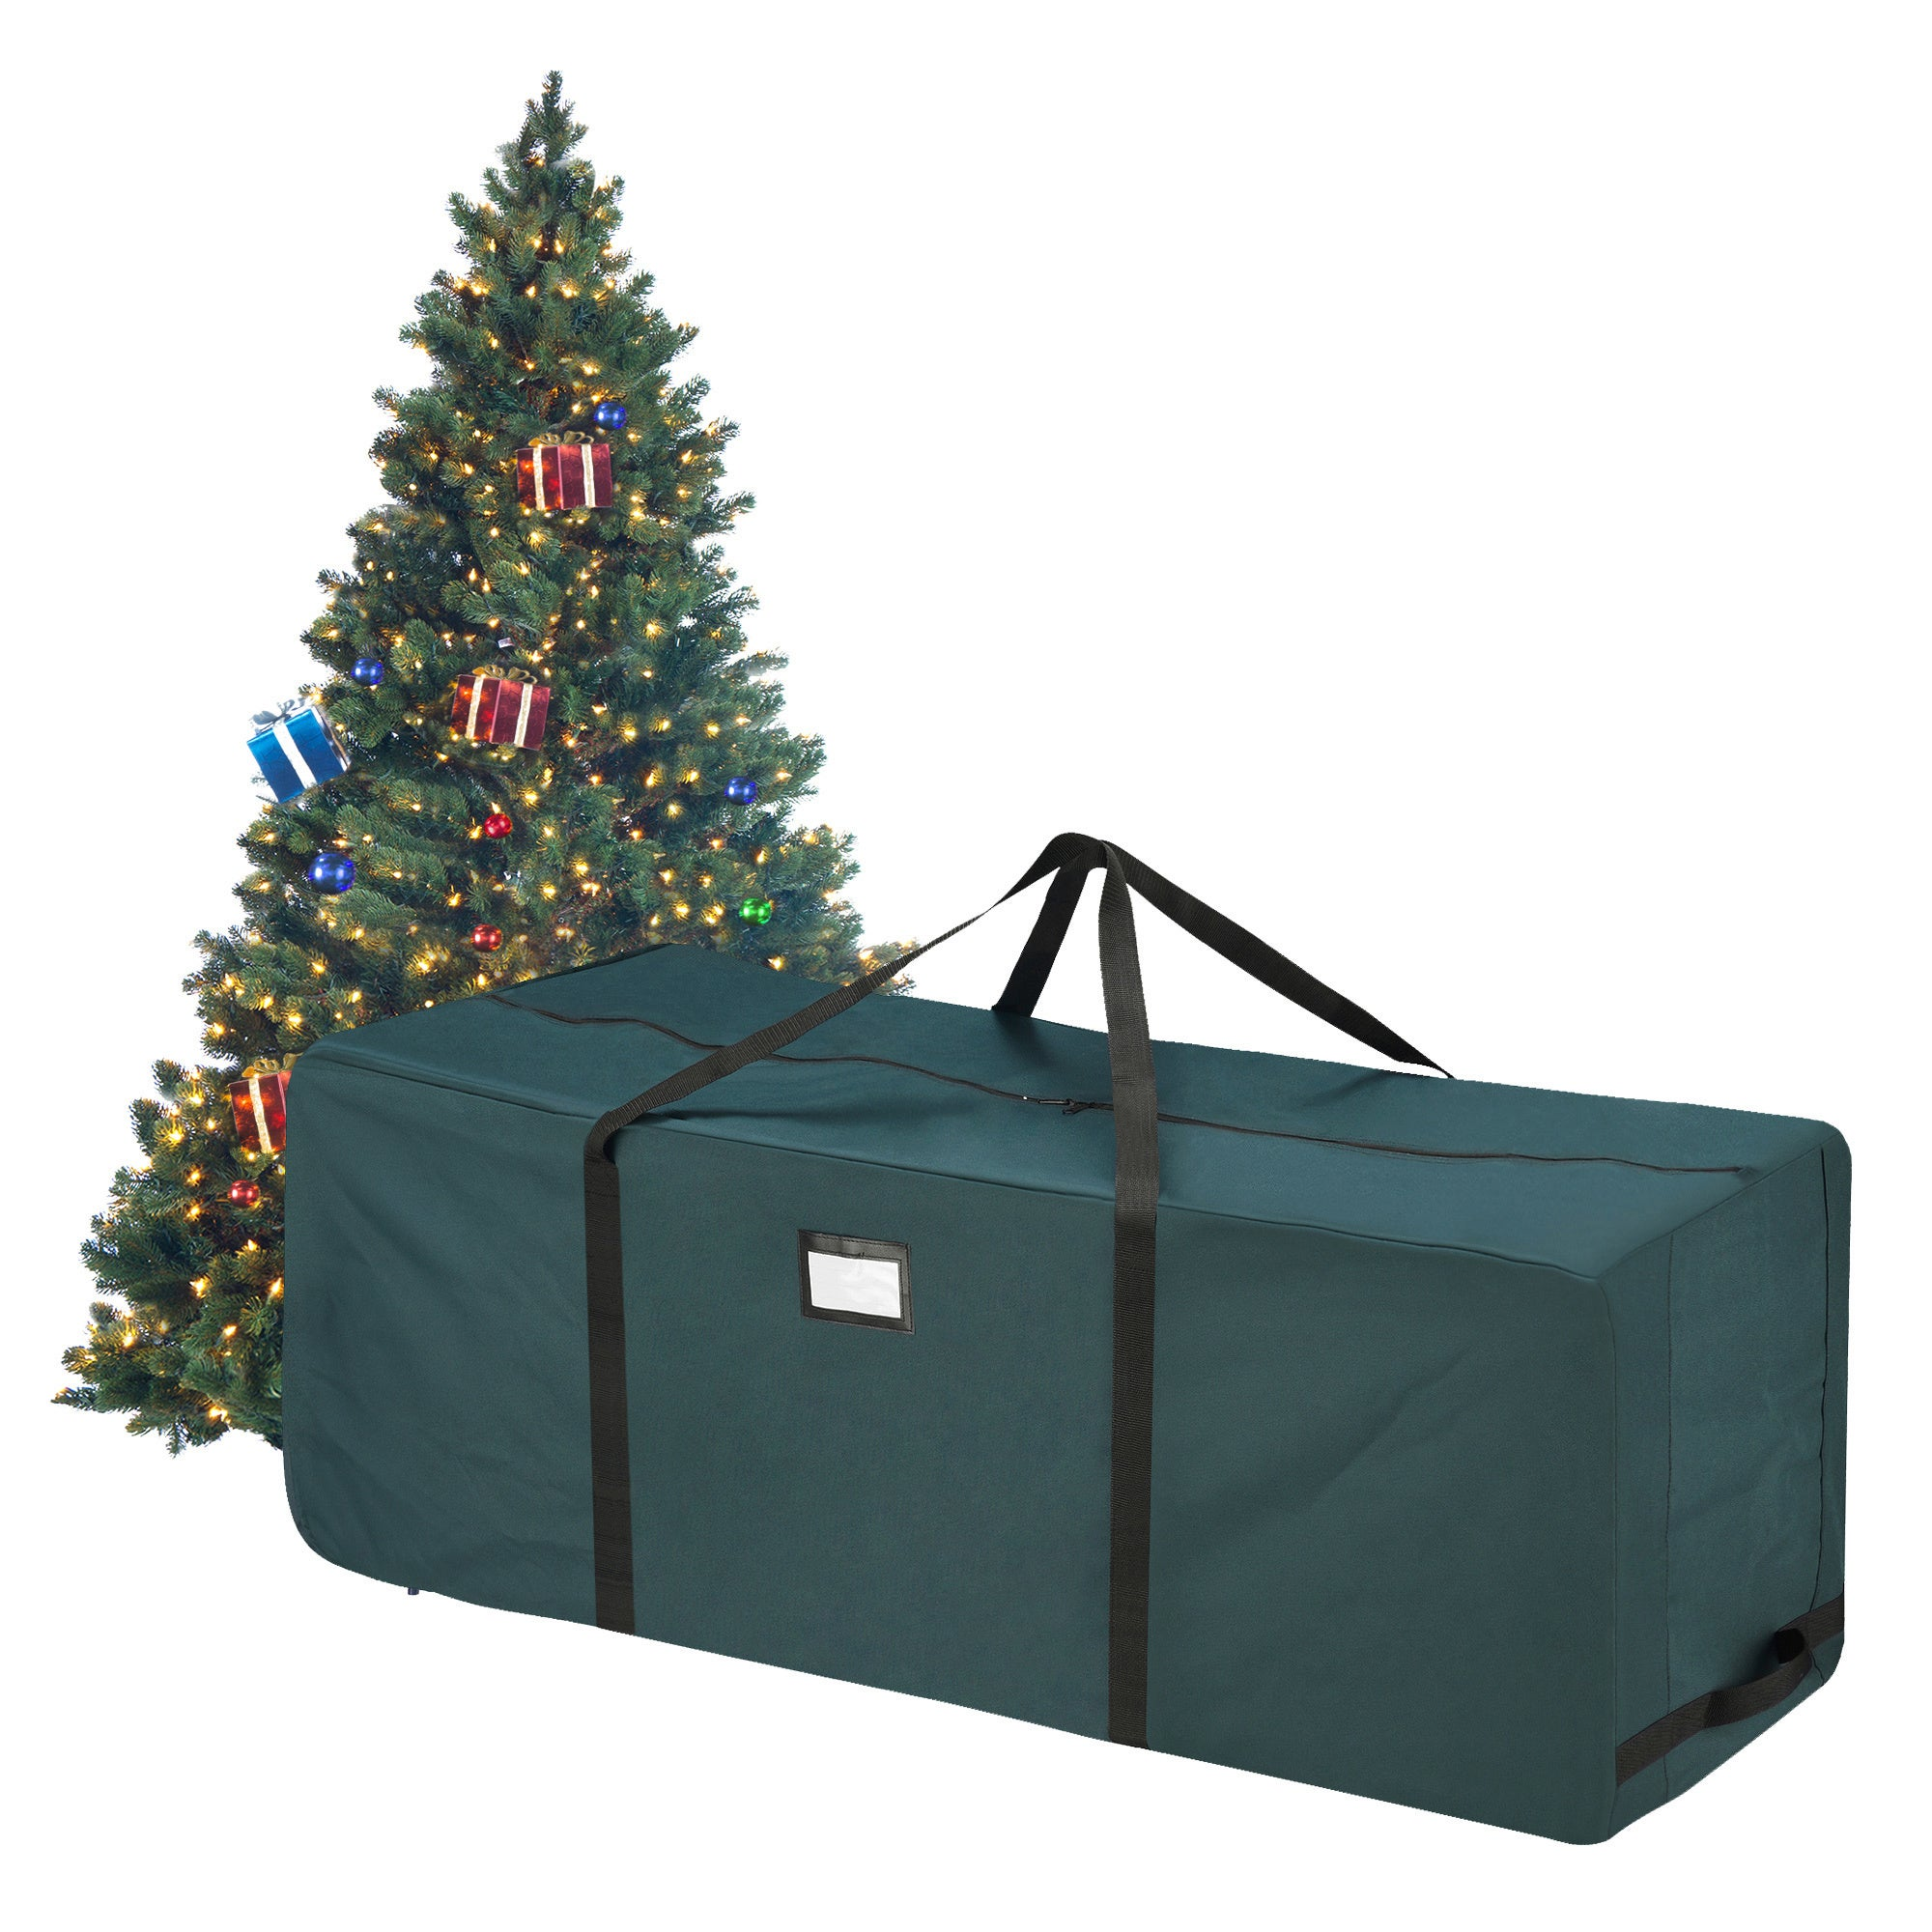 Shop Elf Stor Green Canvas Rolling Christmas Tree Storage Duffel Bag - Free  Shipping On Orders Over  45 - Overstock - 13434300 a7dbd34f13a6d